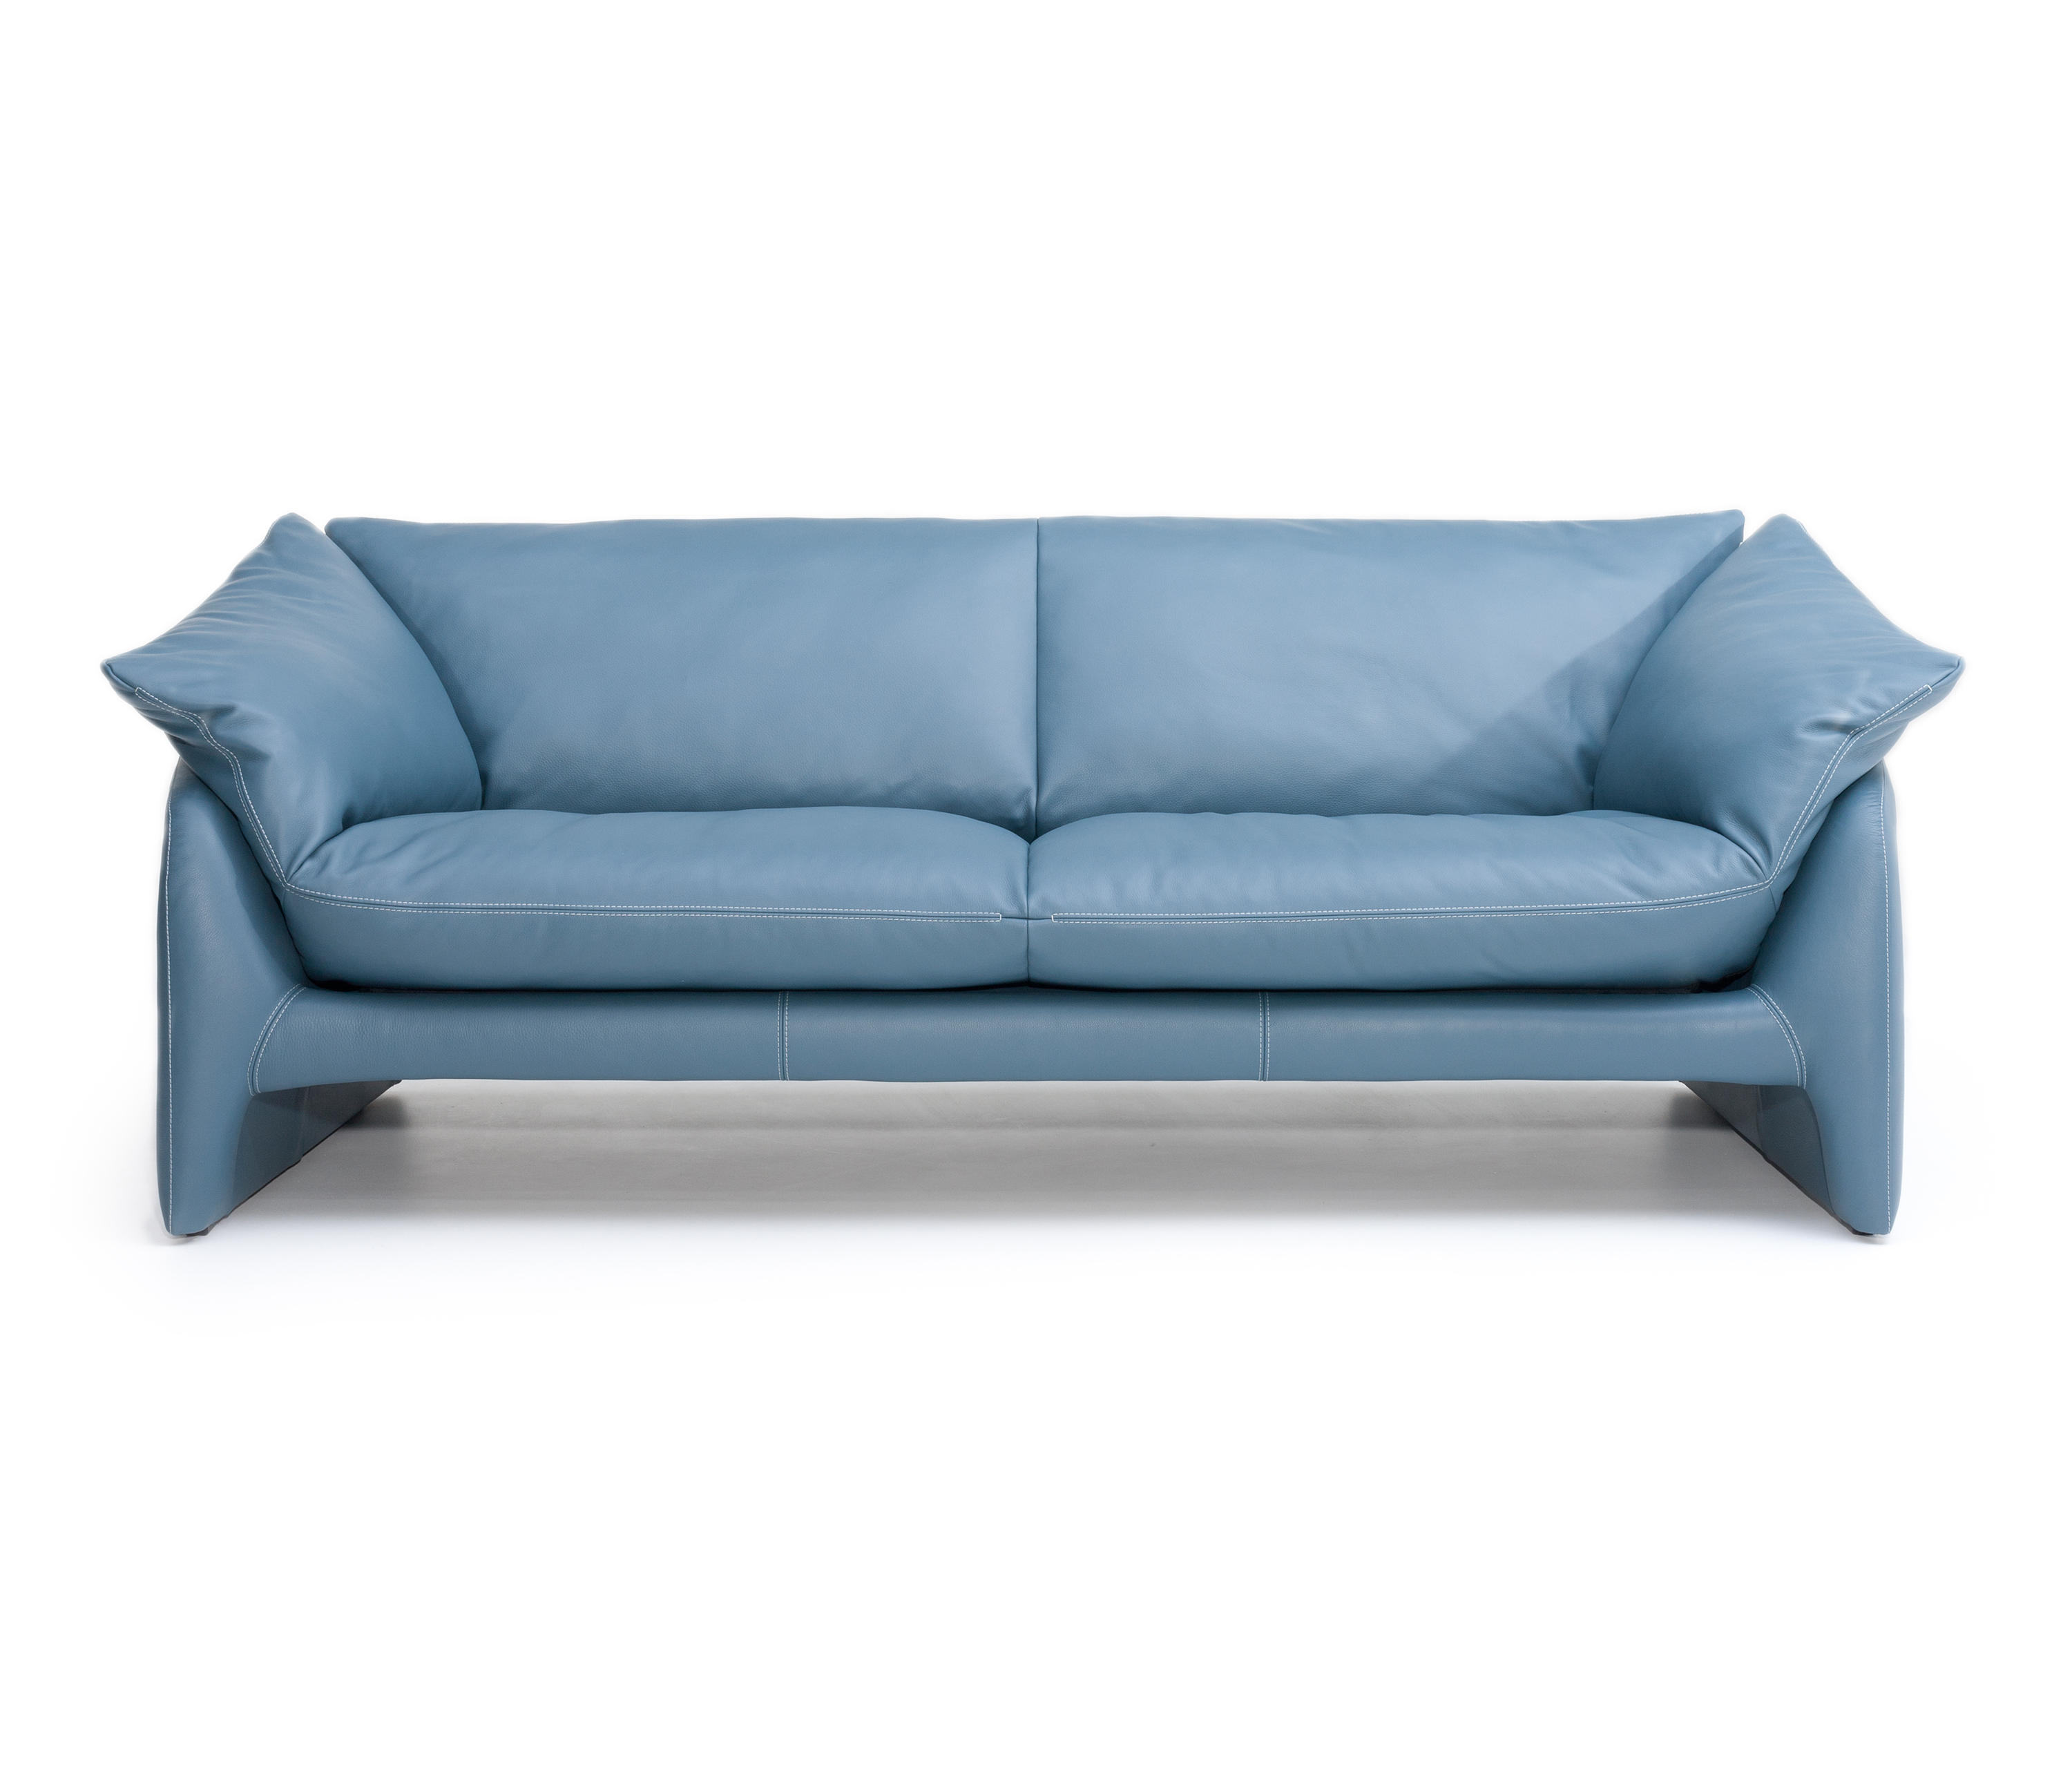 SOFAS WITH SEAT IN LEATHER High quality designer SOFAS